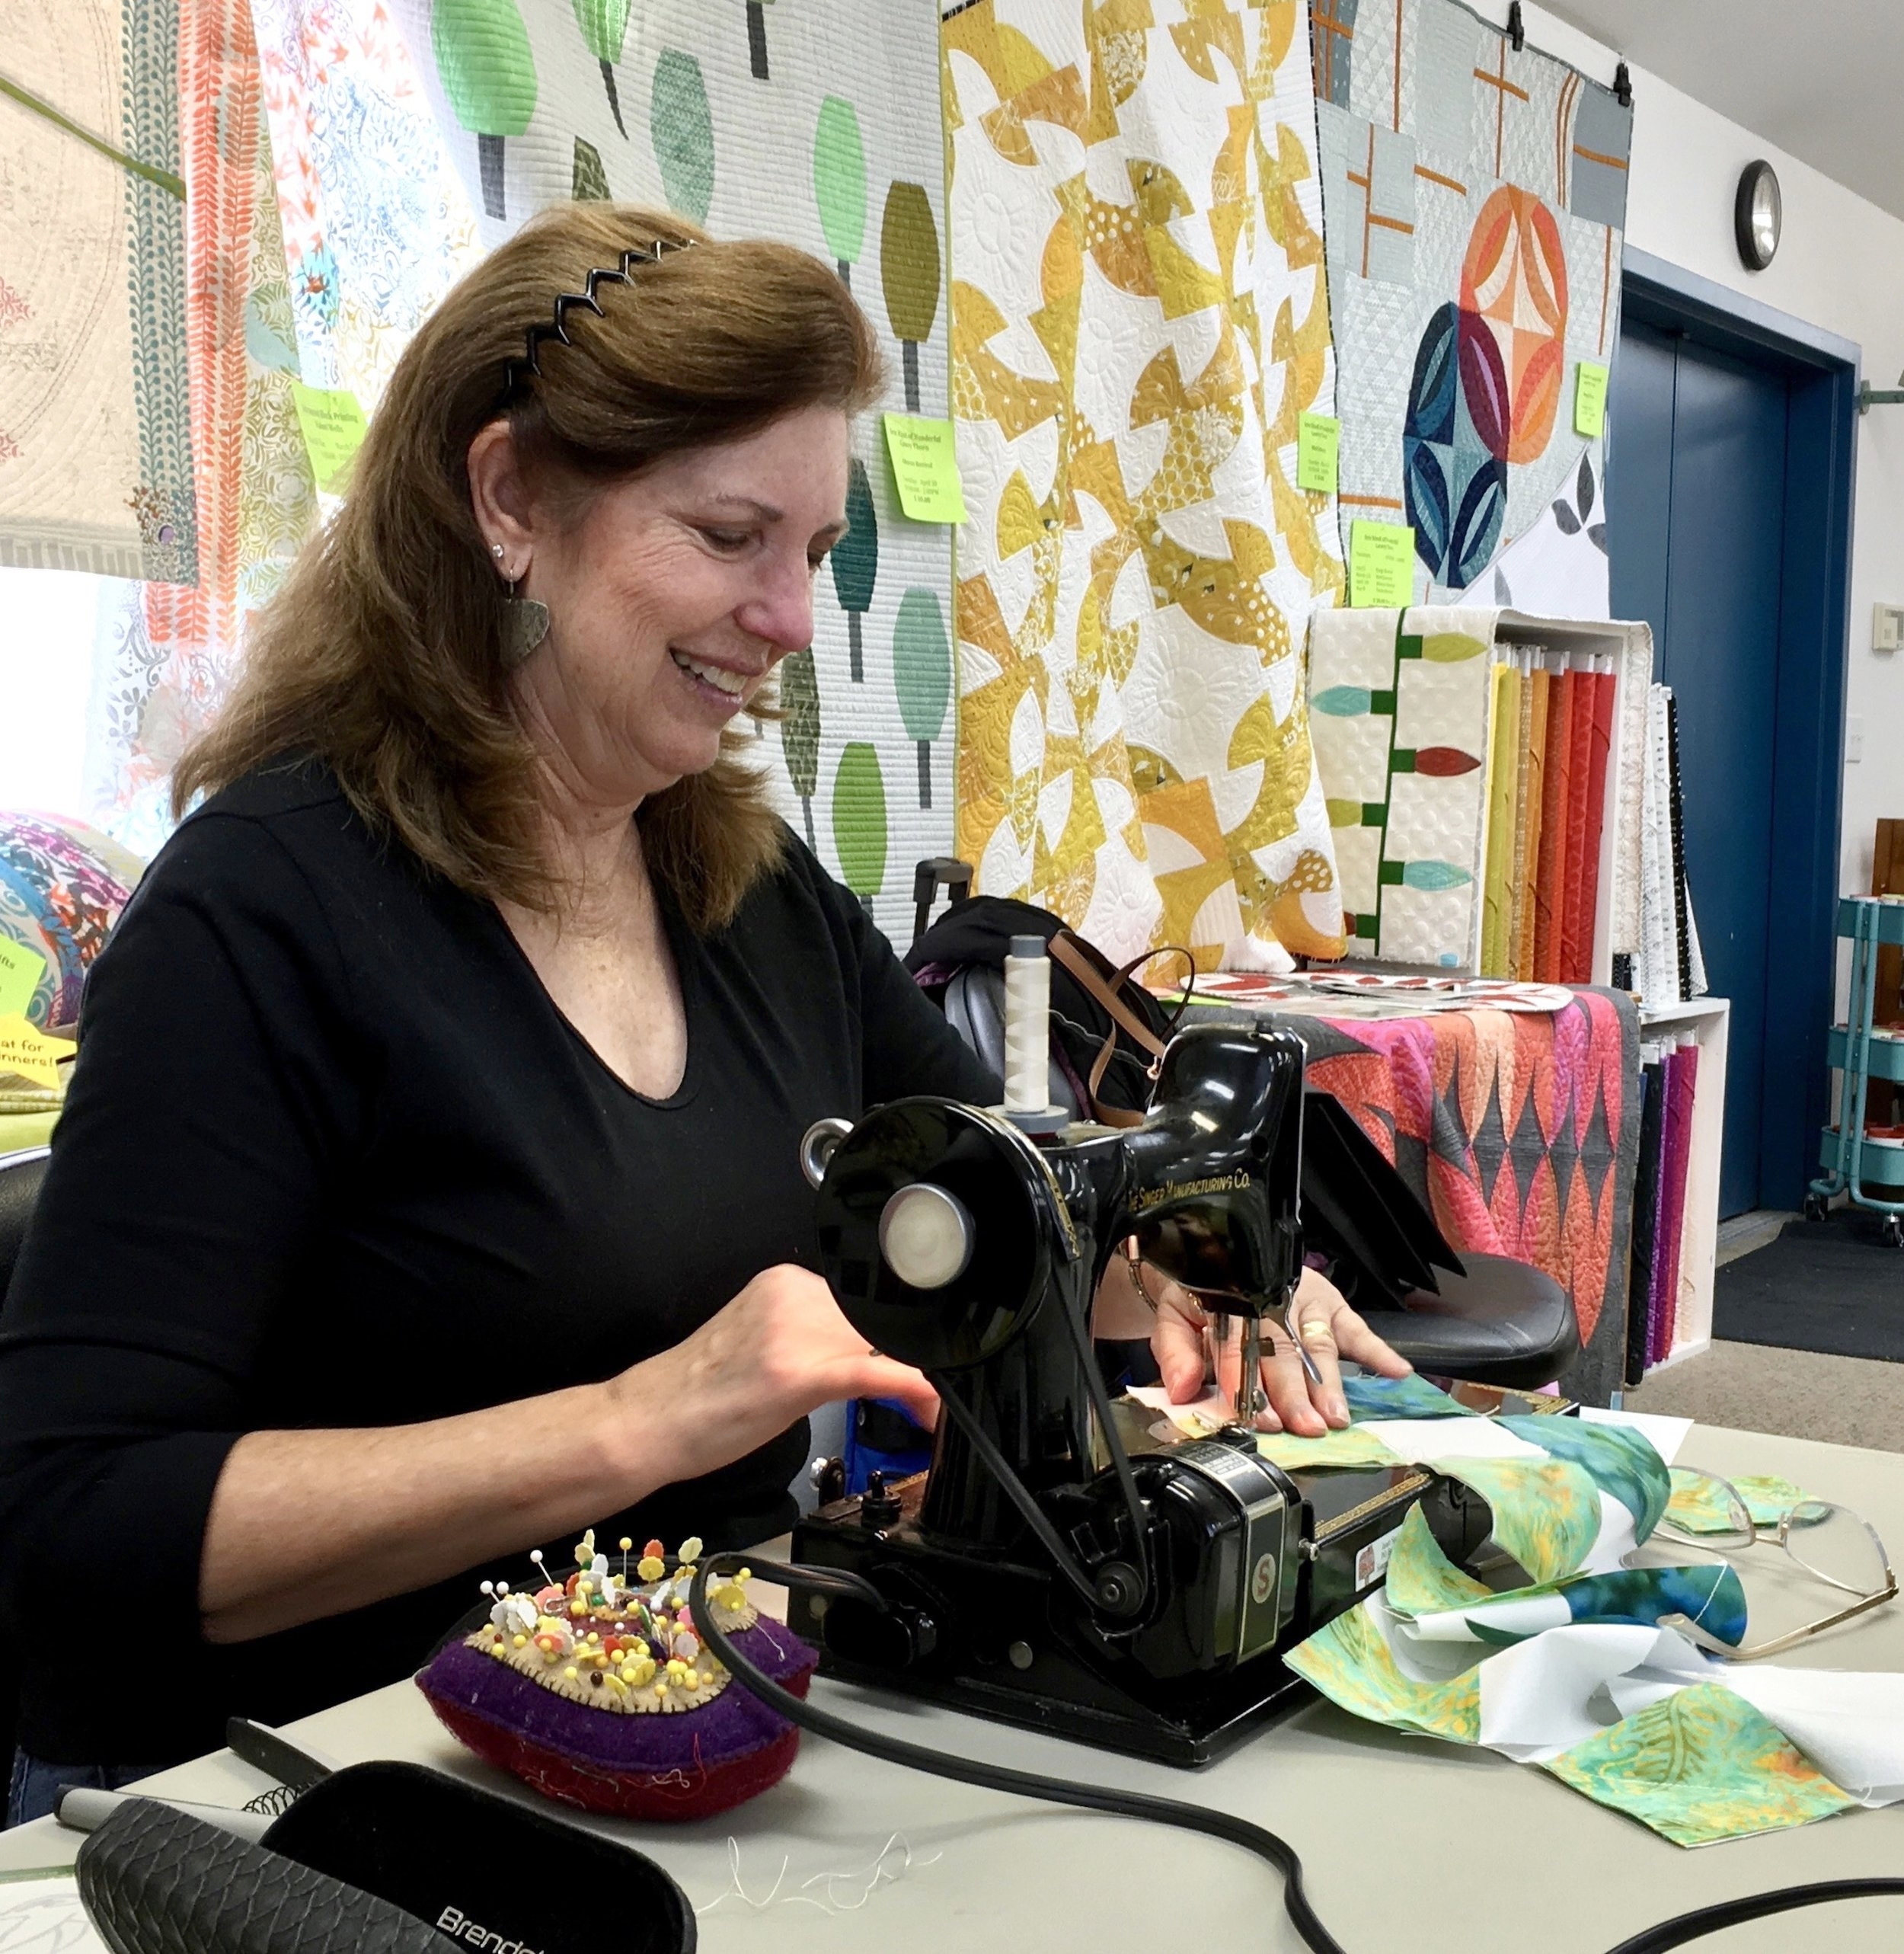 "East of the Cascades Quilters (EOCQ) member Janet Storton guides fabric through her vintage Singer Featherweight to prepare a blank square for the Sisters Country signature quilt. ""My love for quilting and this community drew me to the project,"" Storton says. Several EOCQ members have generously volunteered their time to help C4C bring the quilt to life.   All area residents are invited to join that effort by writing sentiments on quilt squares during Values & Visioning Days booths, set for March 9, 10, 16 and 17."